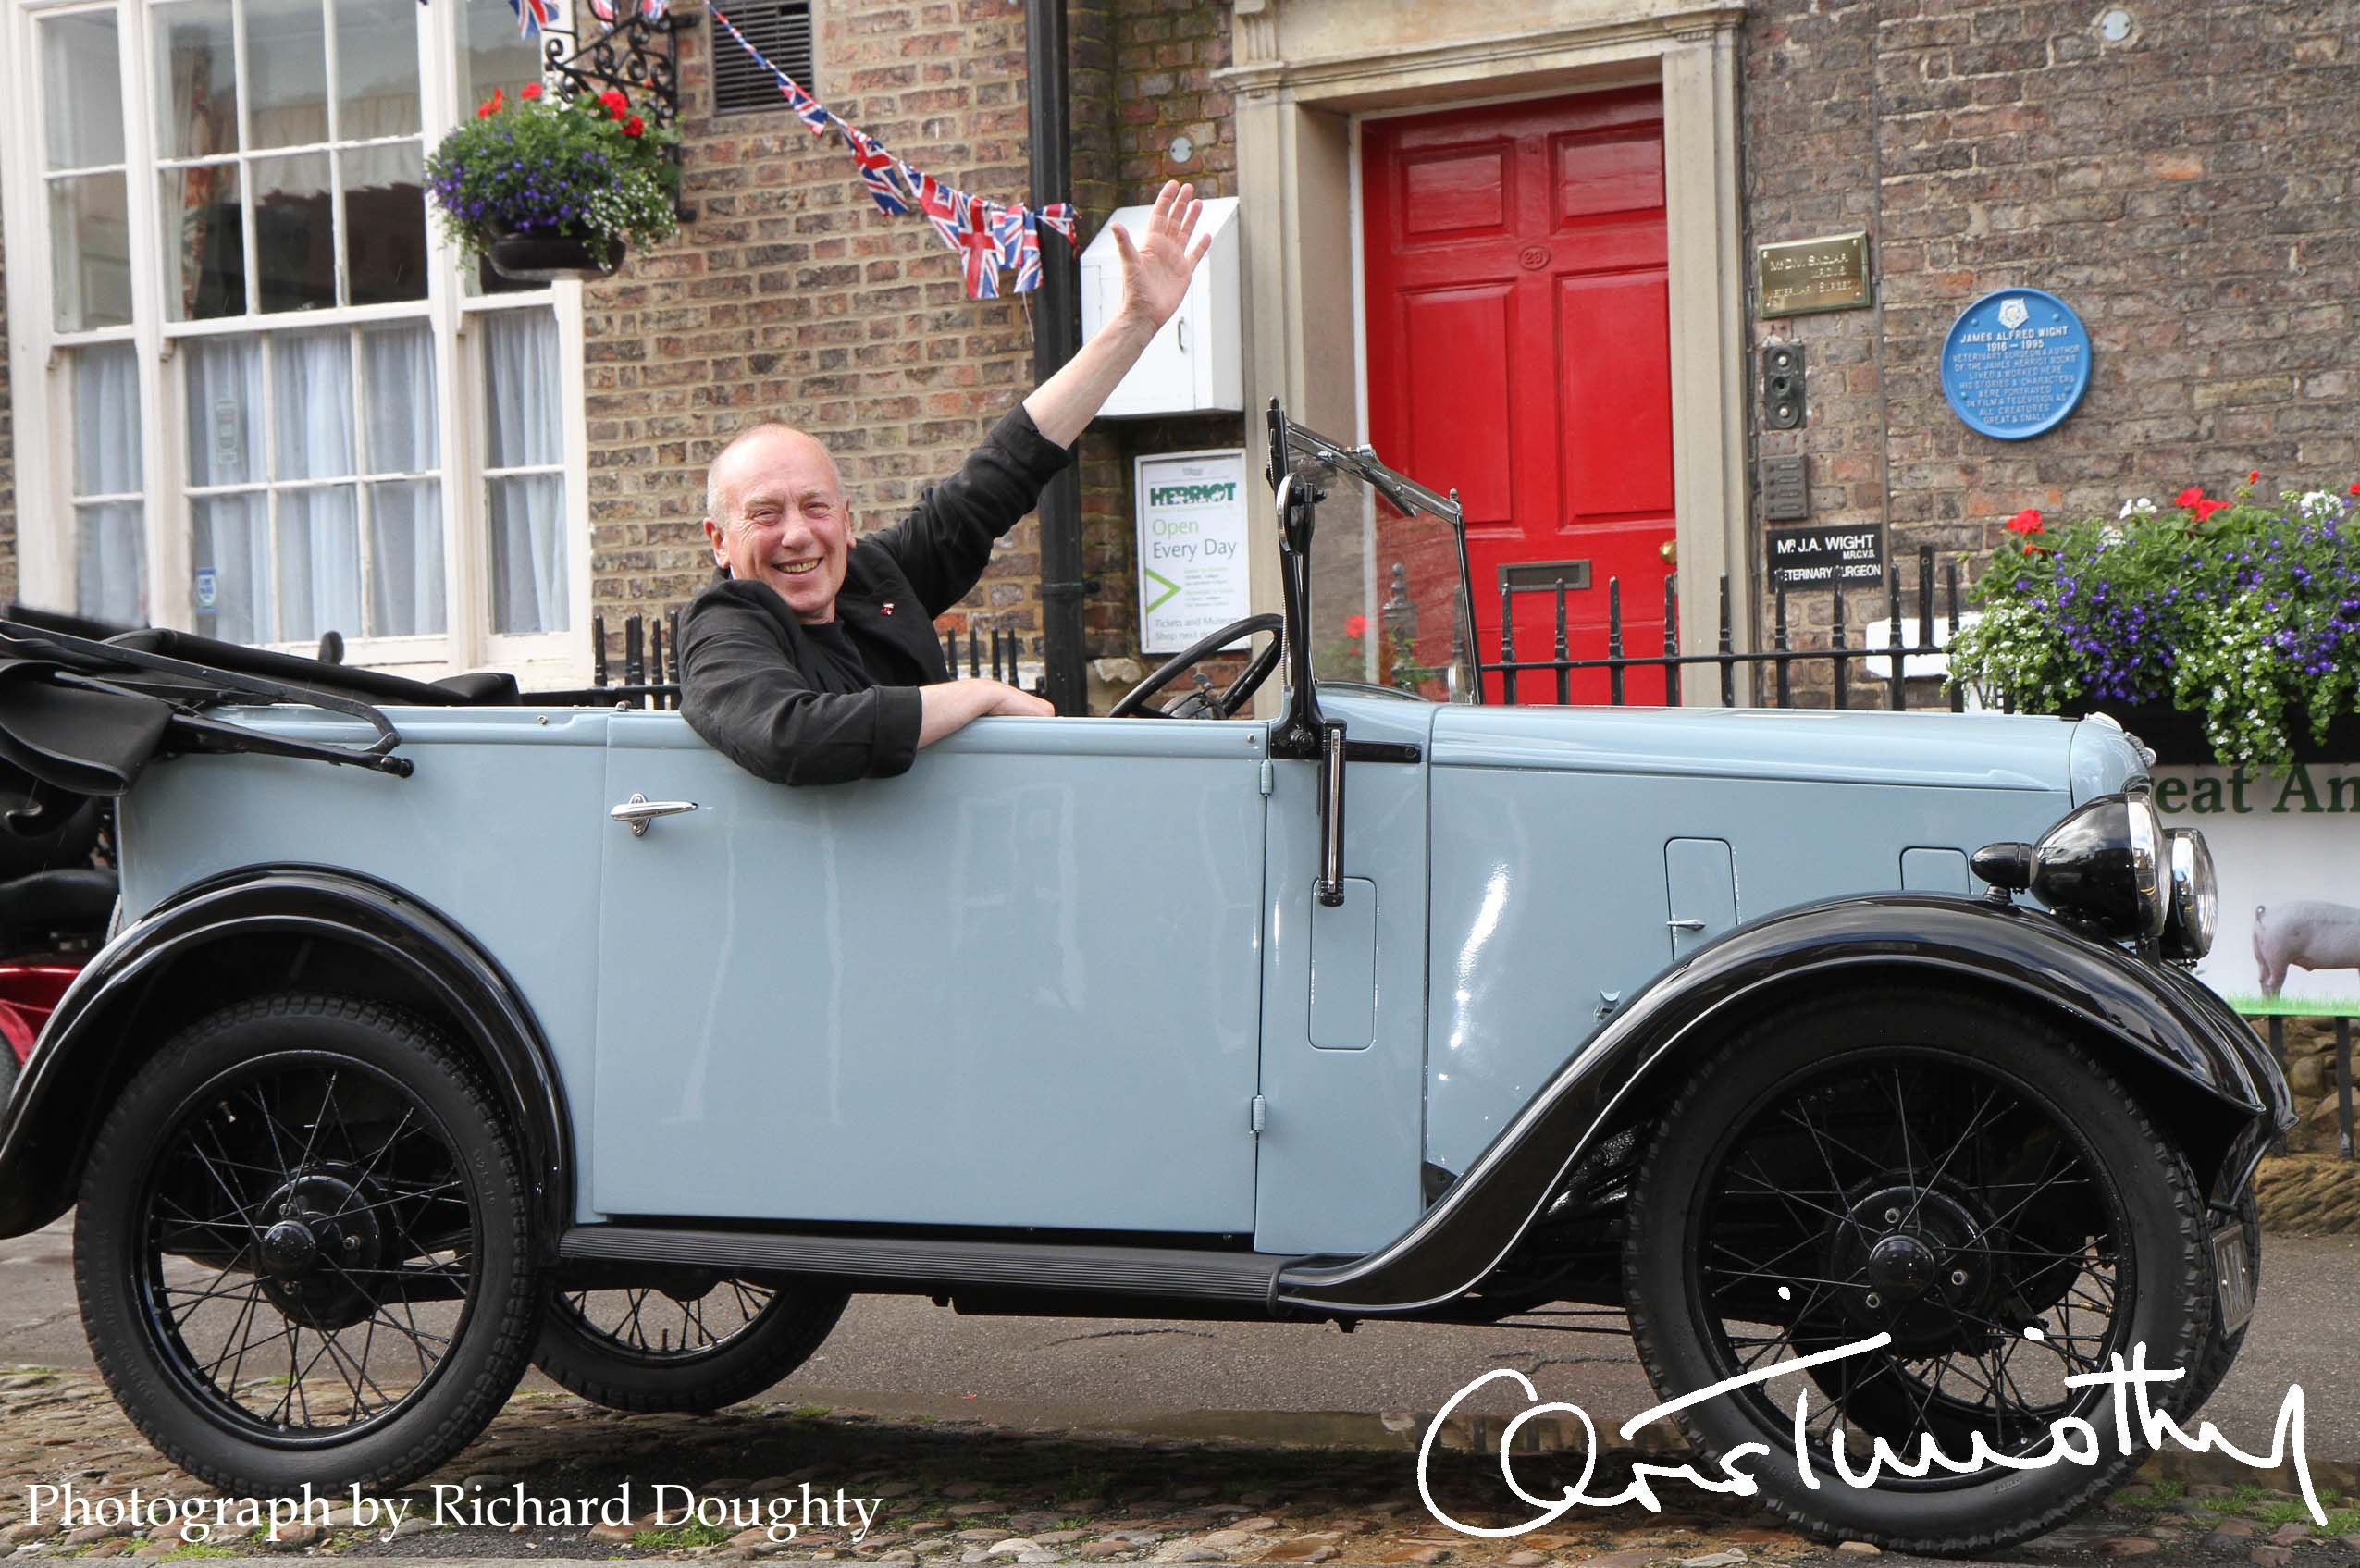 centenary anniversary year of alf wight james herriot hello actor christopher timothy from all creatures great and small pic richard doughty